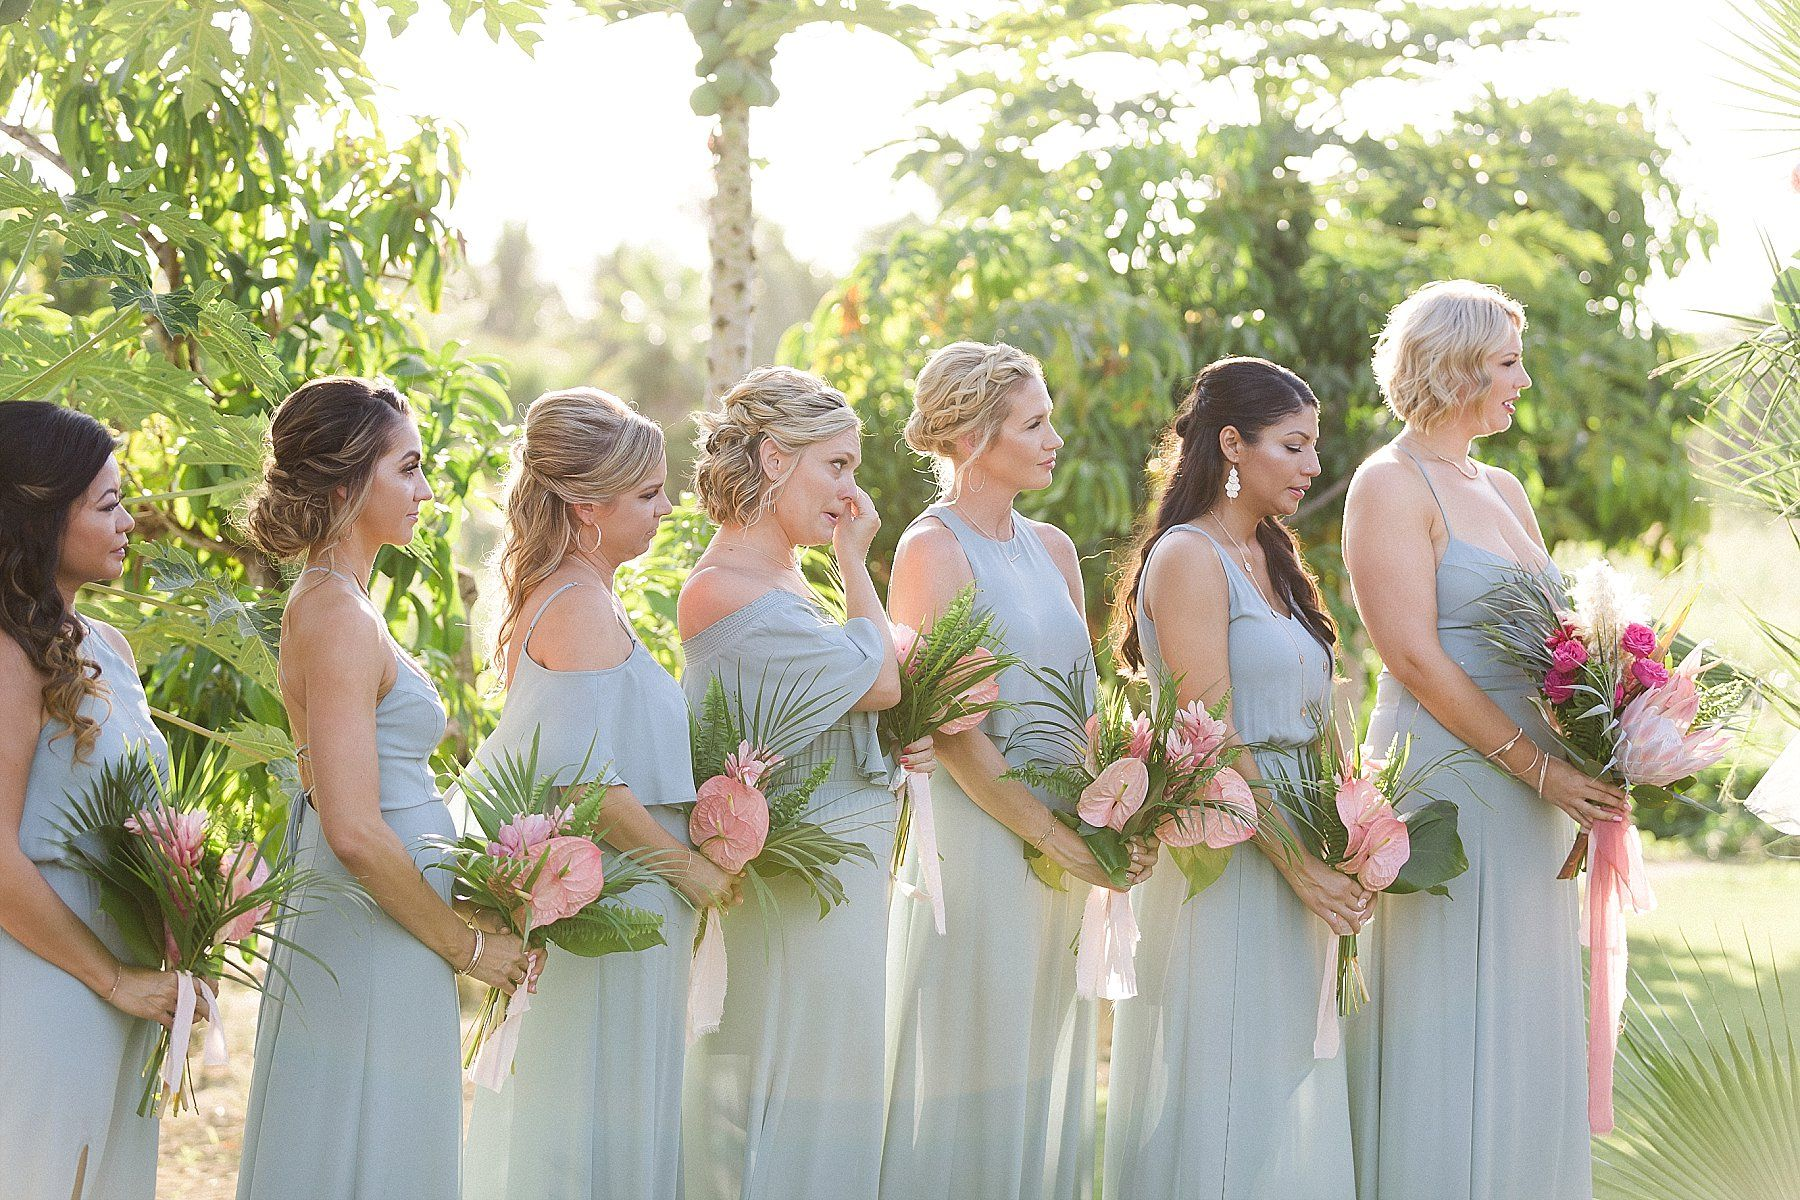 Bridesmaids standing during Wedding Ceremony at Flora Farms in Cabo San Lucas Mexico. Destination Wedding Planning by Cabo Wedding Services. Wedding Photography by Sara Richardson